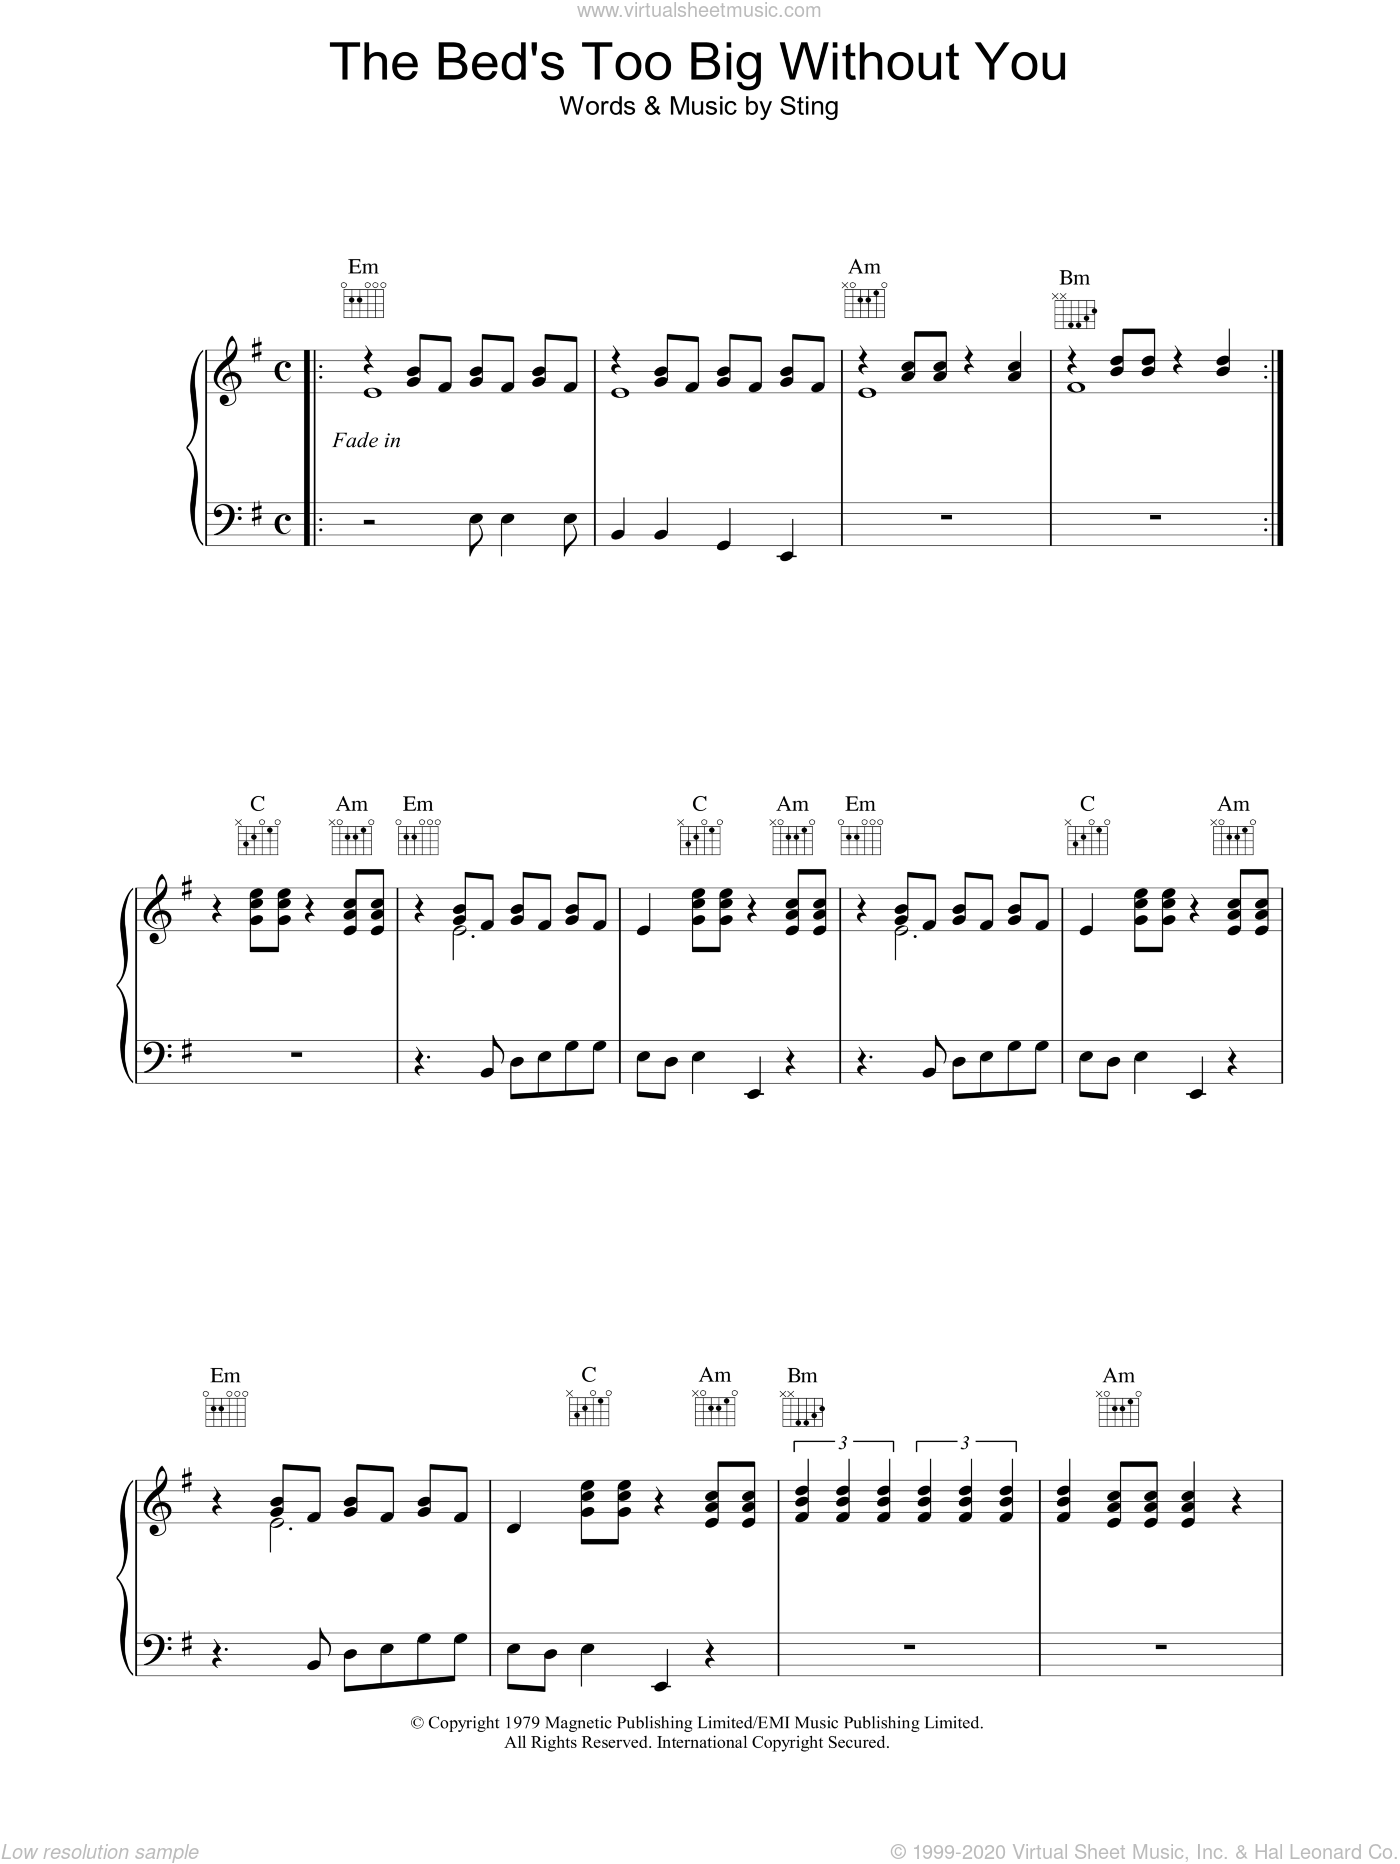 The Bed's Too Big Without You sheet music for voice, piano or guitar by The Police and Sting, intermediate skill level